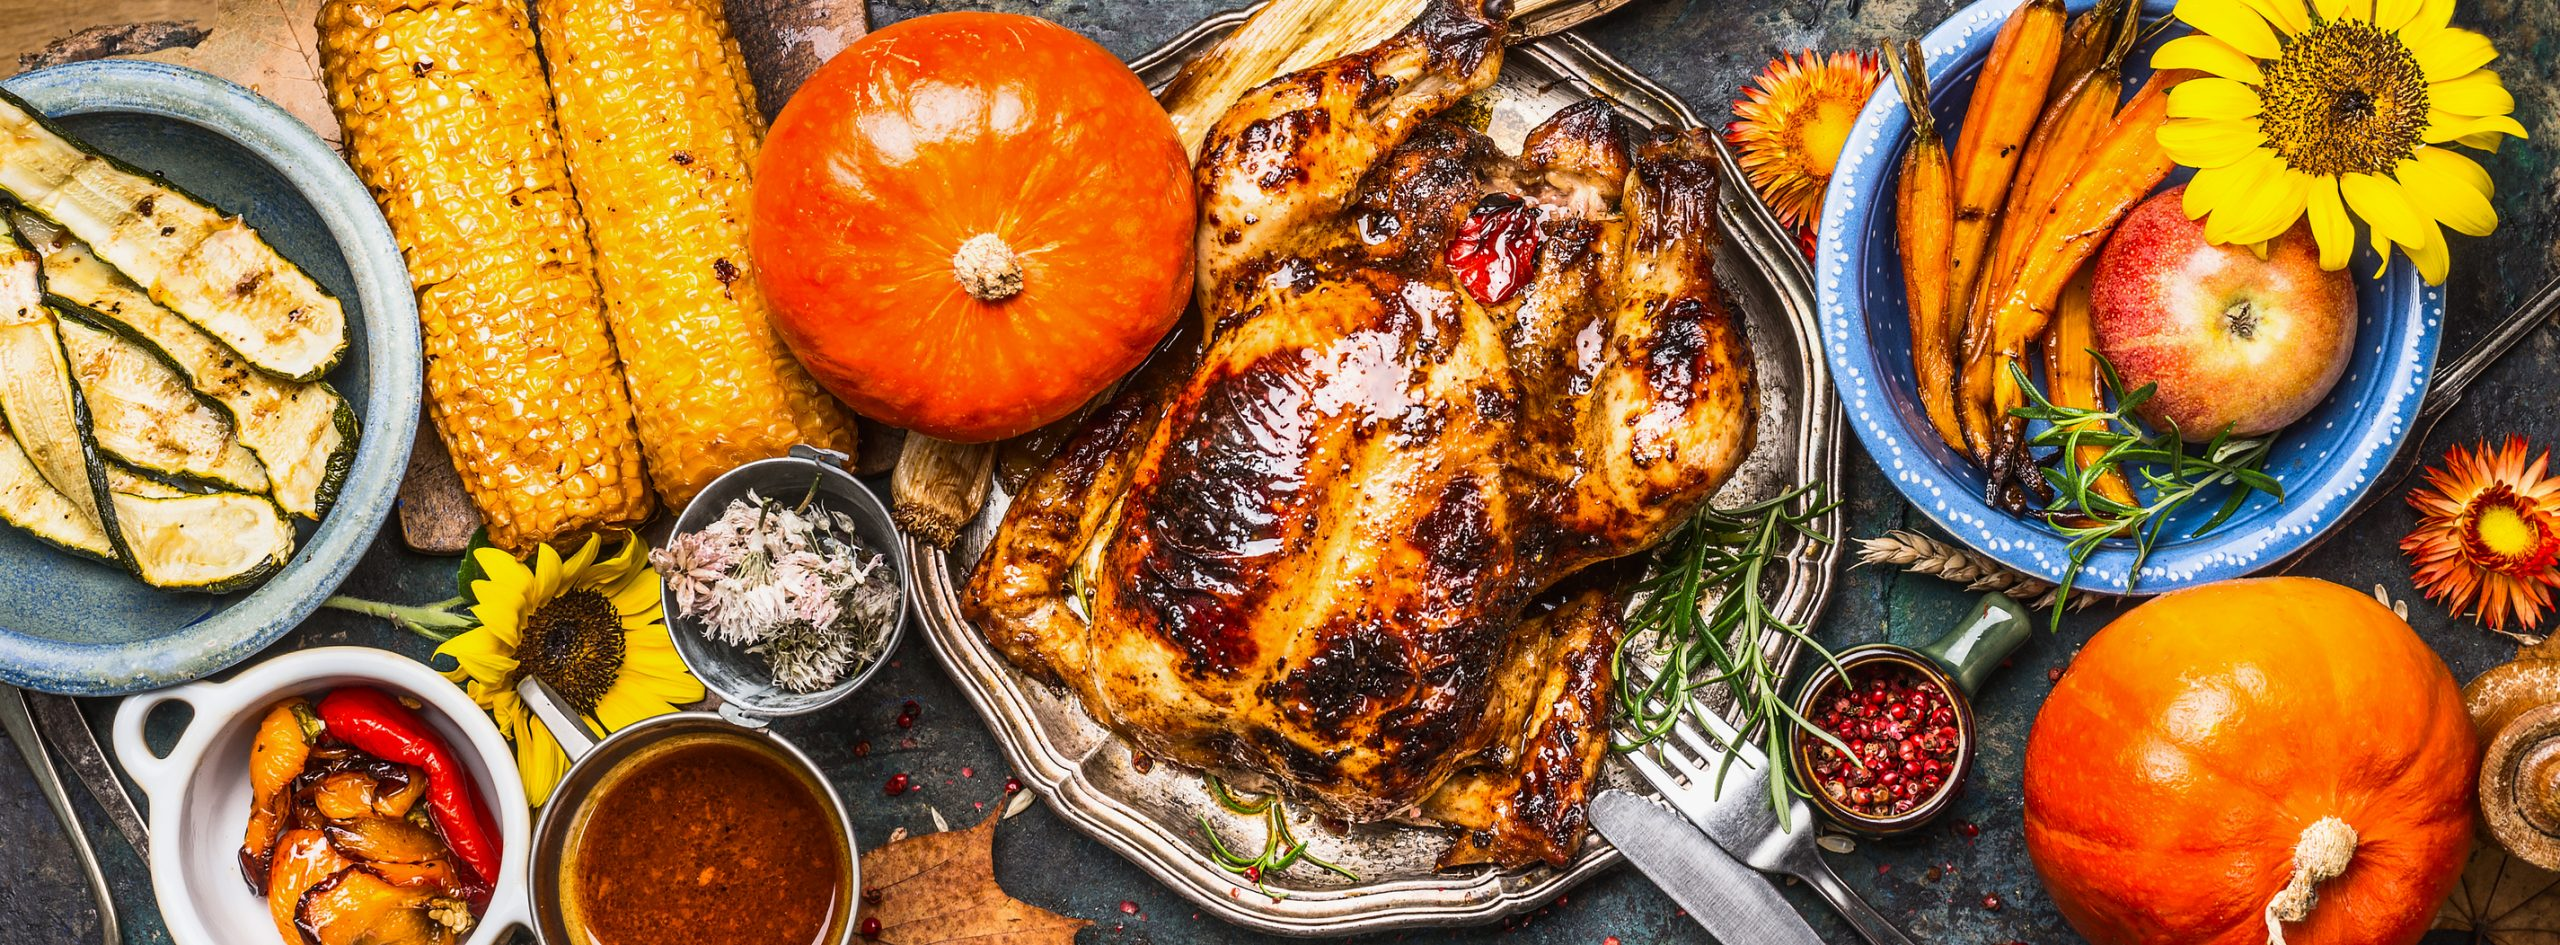 How to Perfectly Grill a Turkey